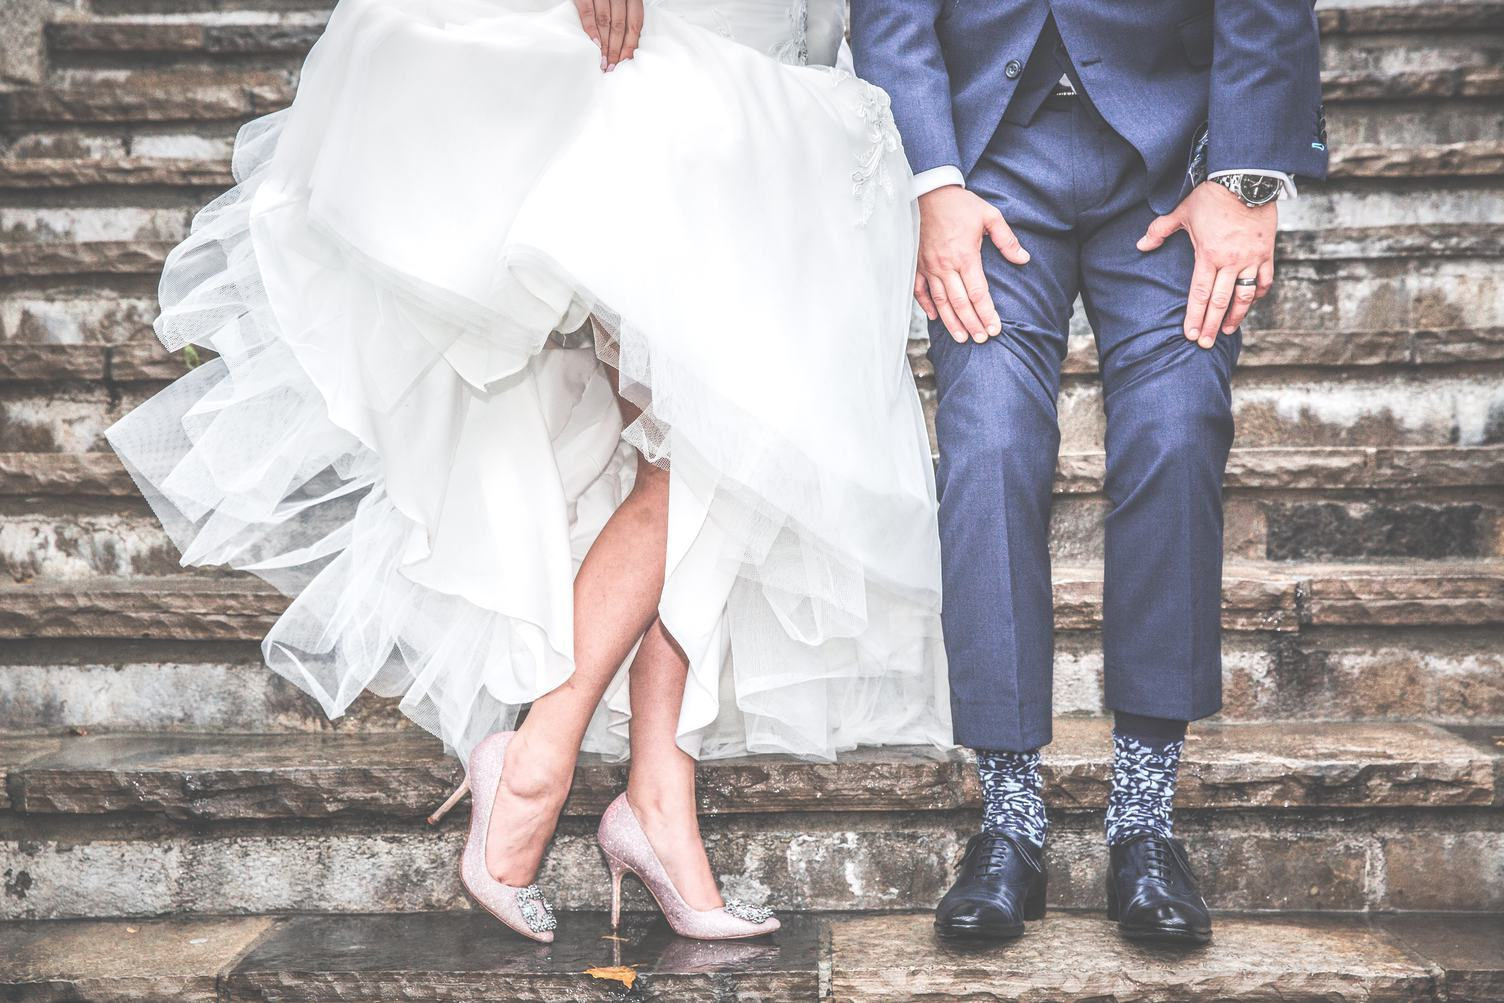 Legs of Bride and Groom on Stairs